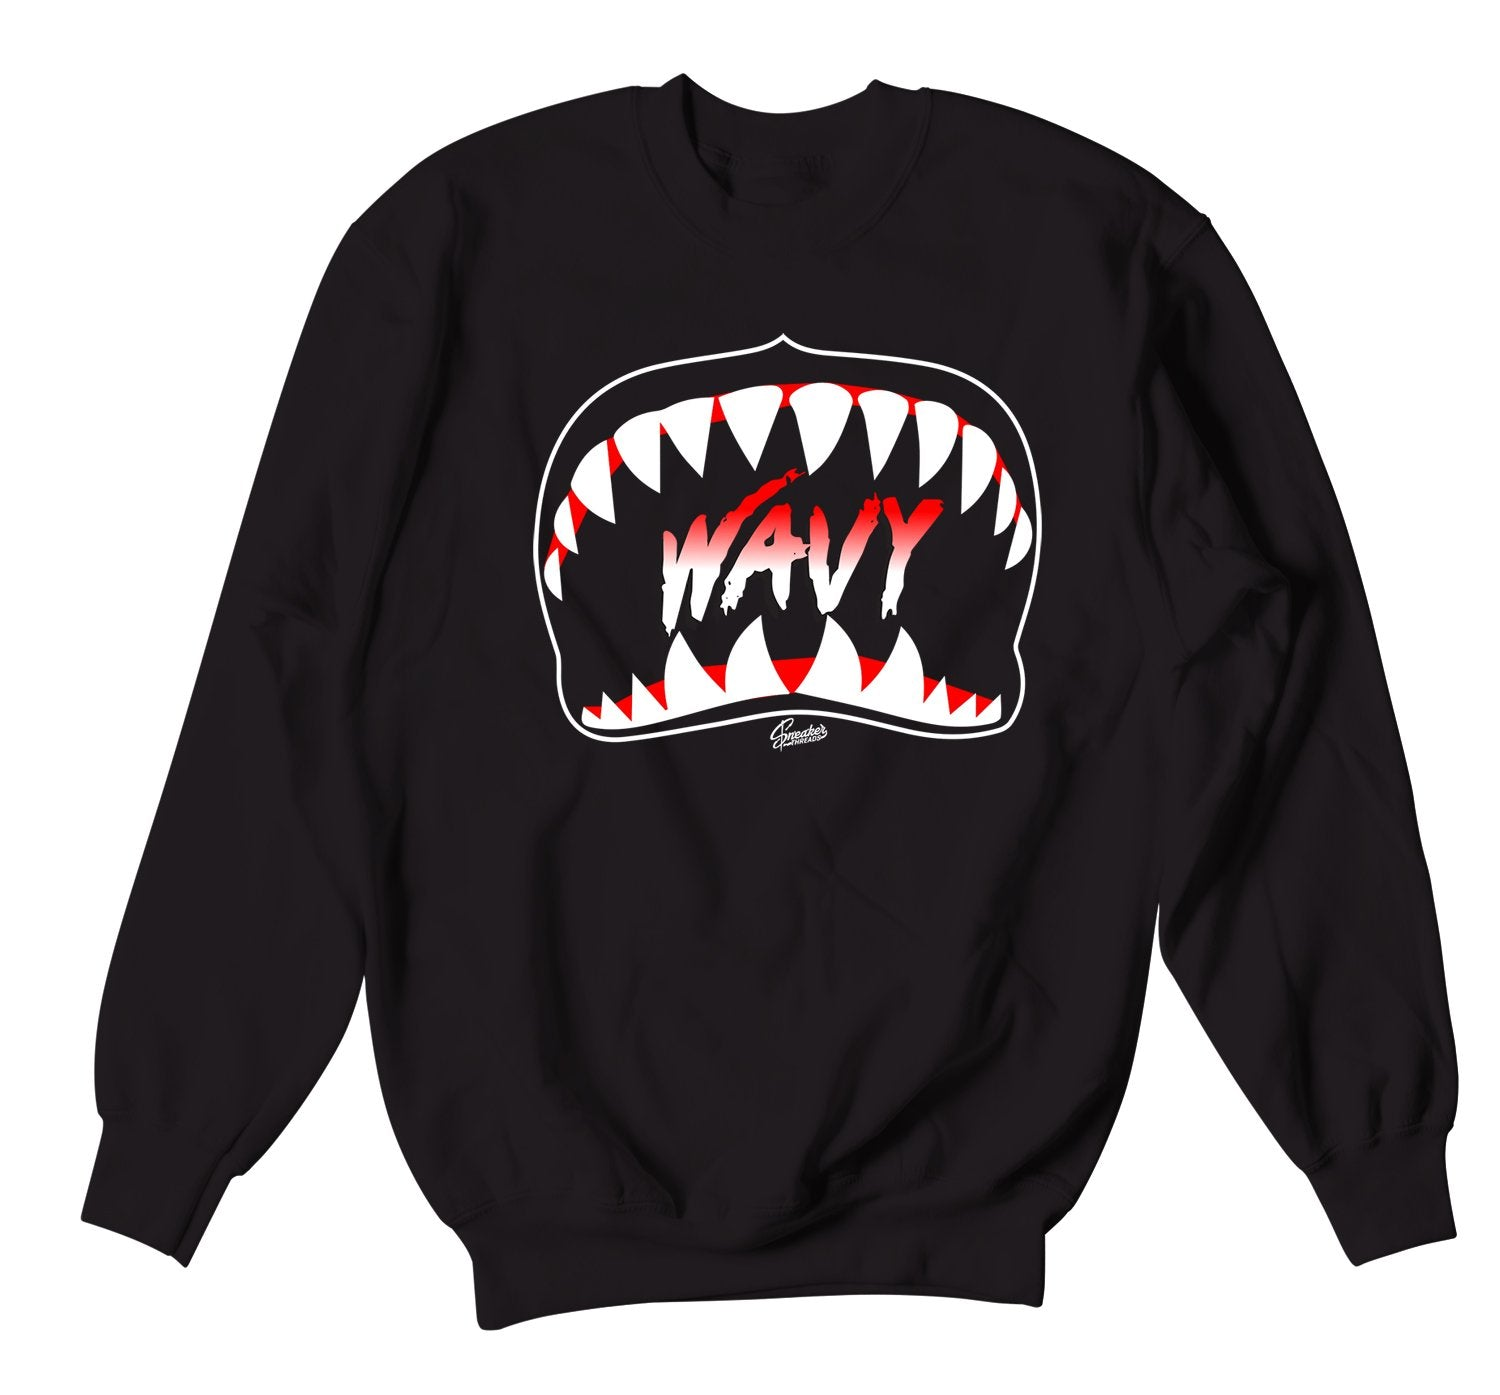 crewneck sweater collection designed to match perfect with the red carpet 17s